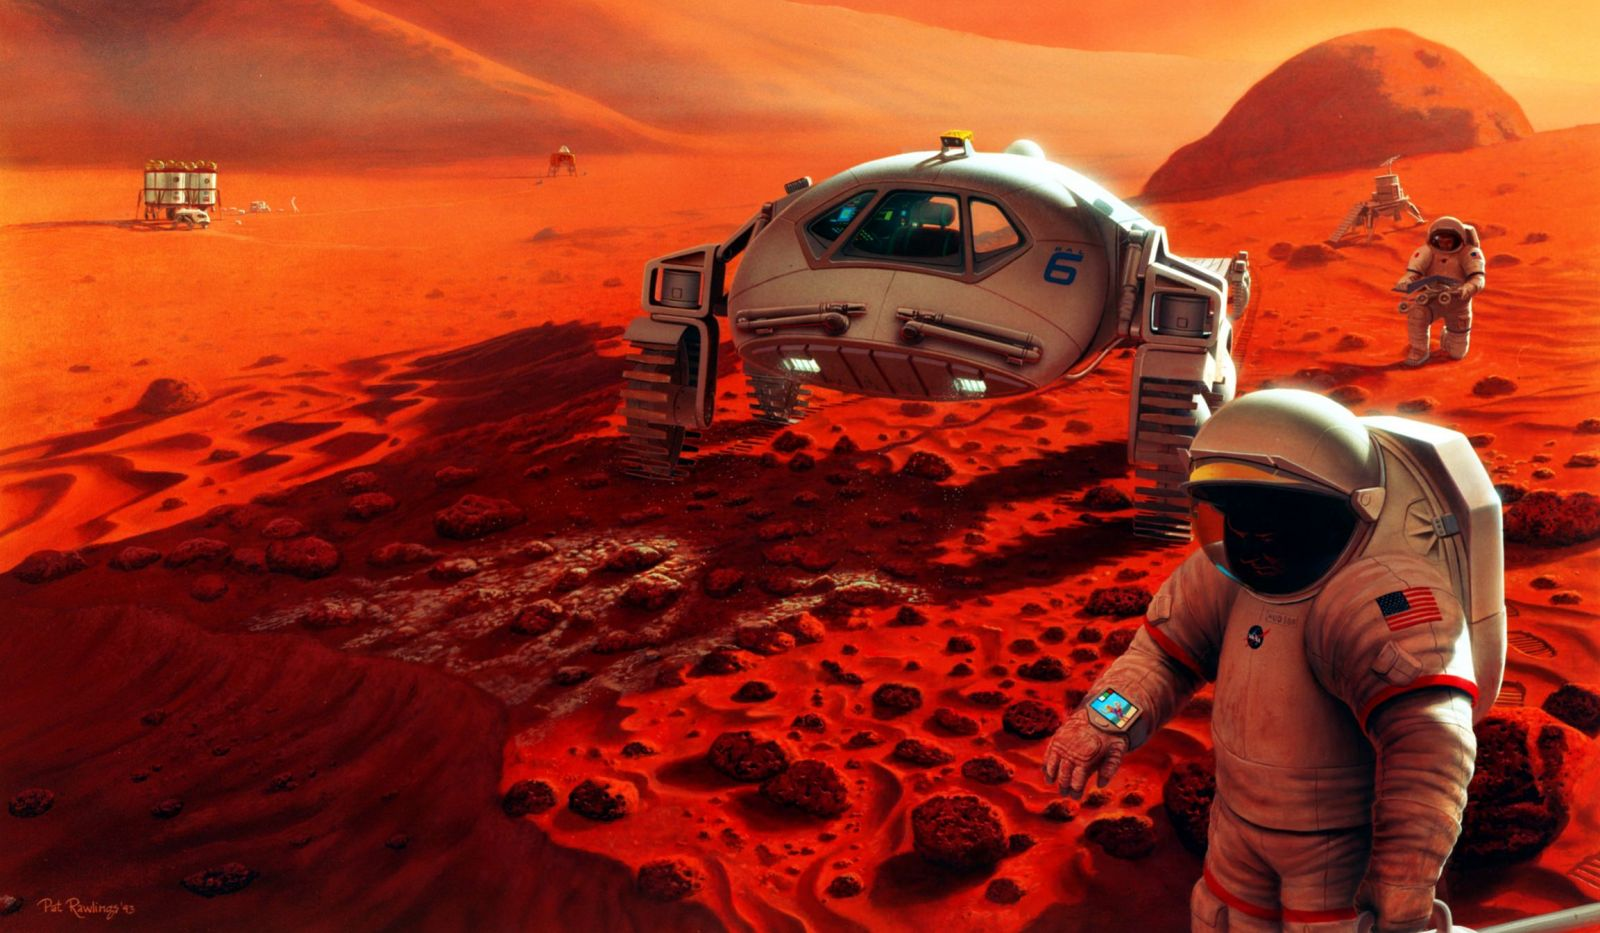 A new study suggests that the cancer risk on a Mars mission due to galactic cosmic-ray radiation could be double what existing models predict.